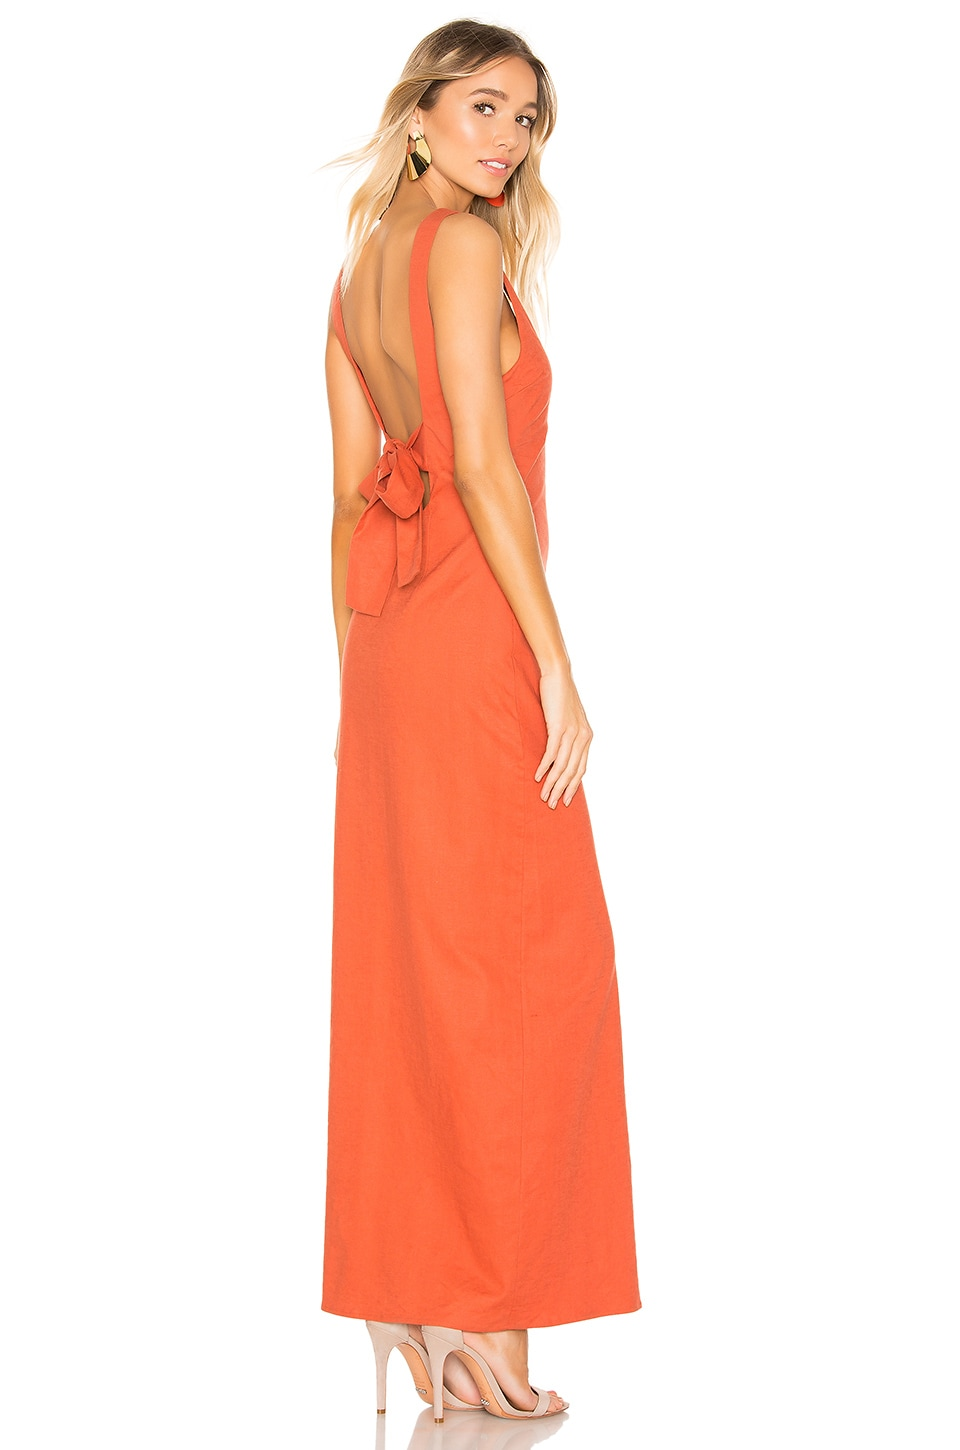 Privacy Please Redondo Maxi Dress in Burnt Orange